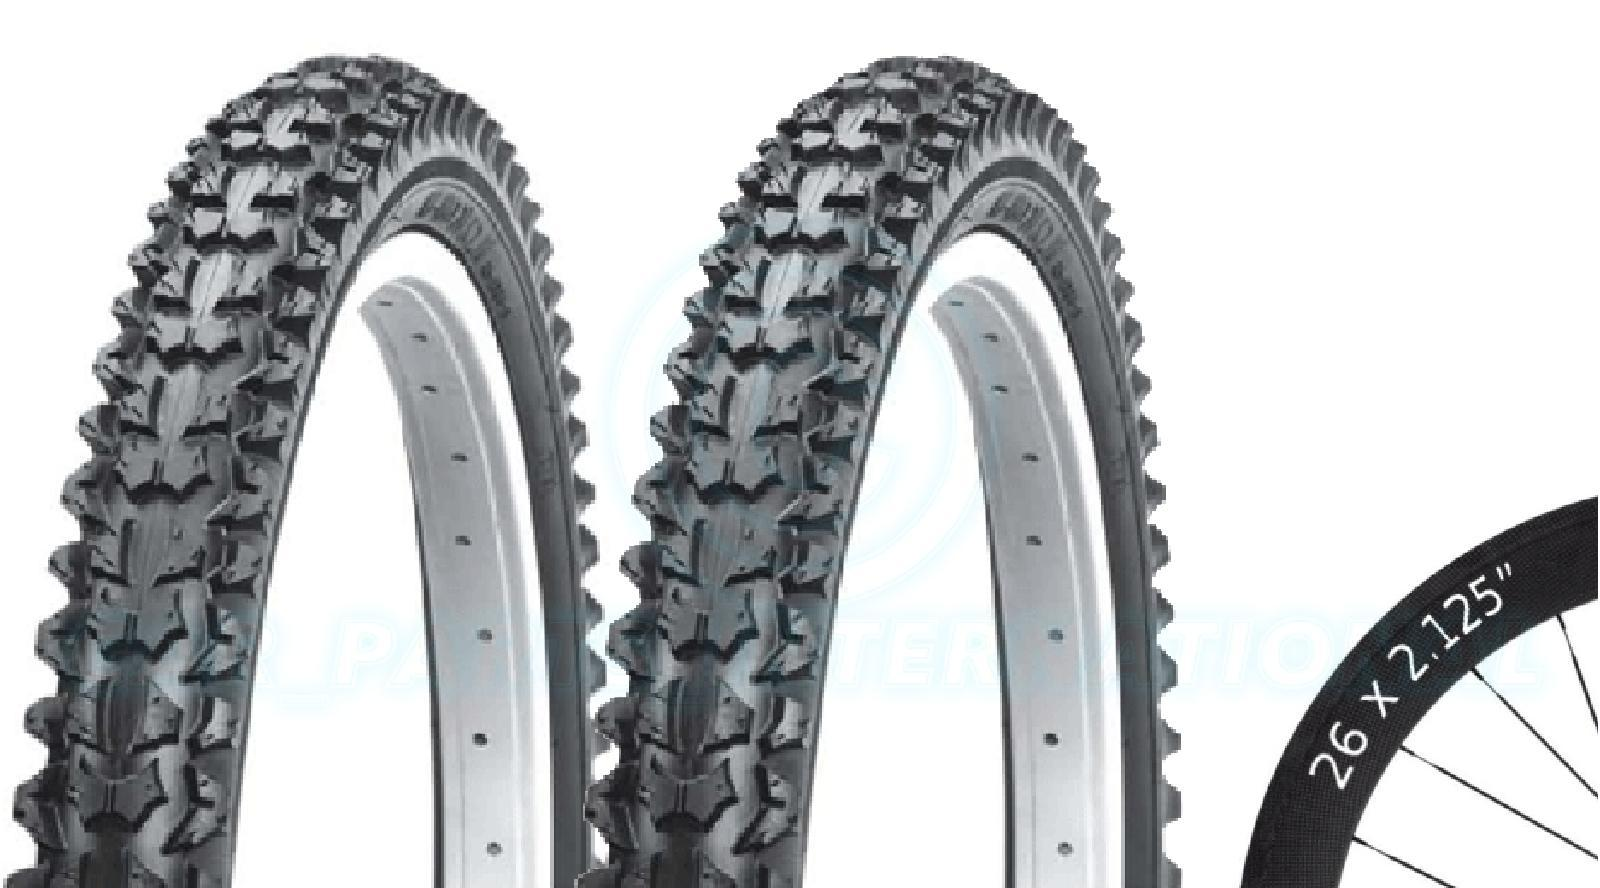 2 Bicycle Tyres Bike Tires - Mountain Bike - 26 x 2.125 - High Quality